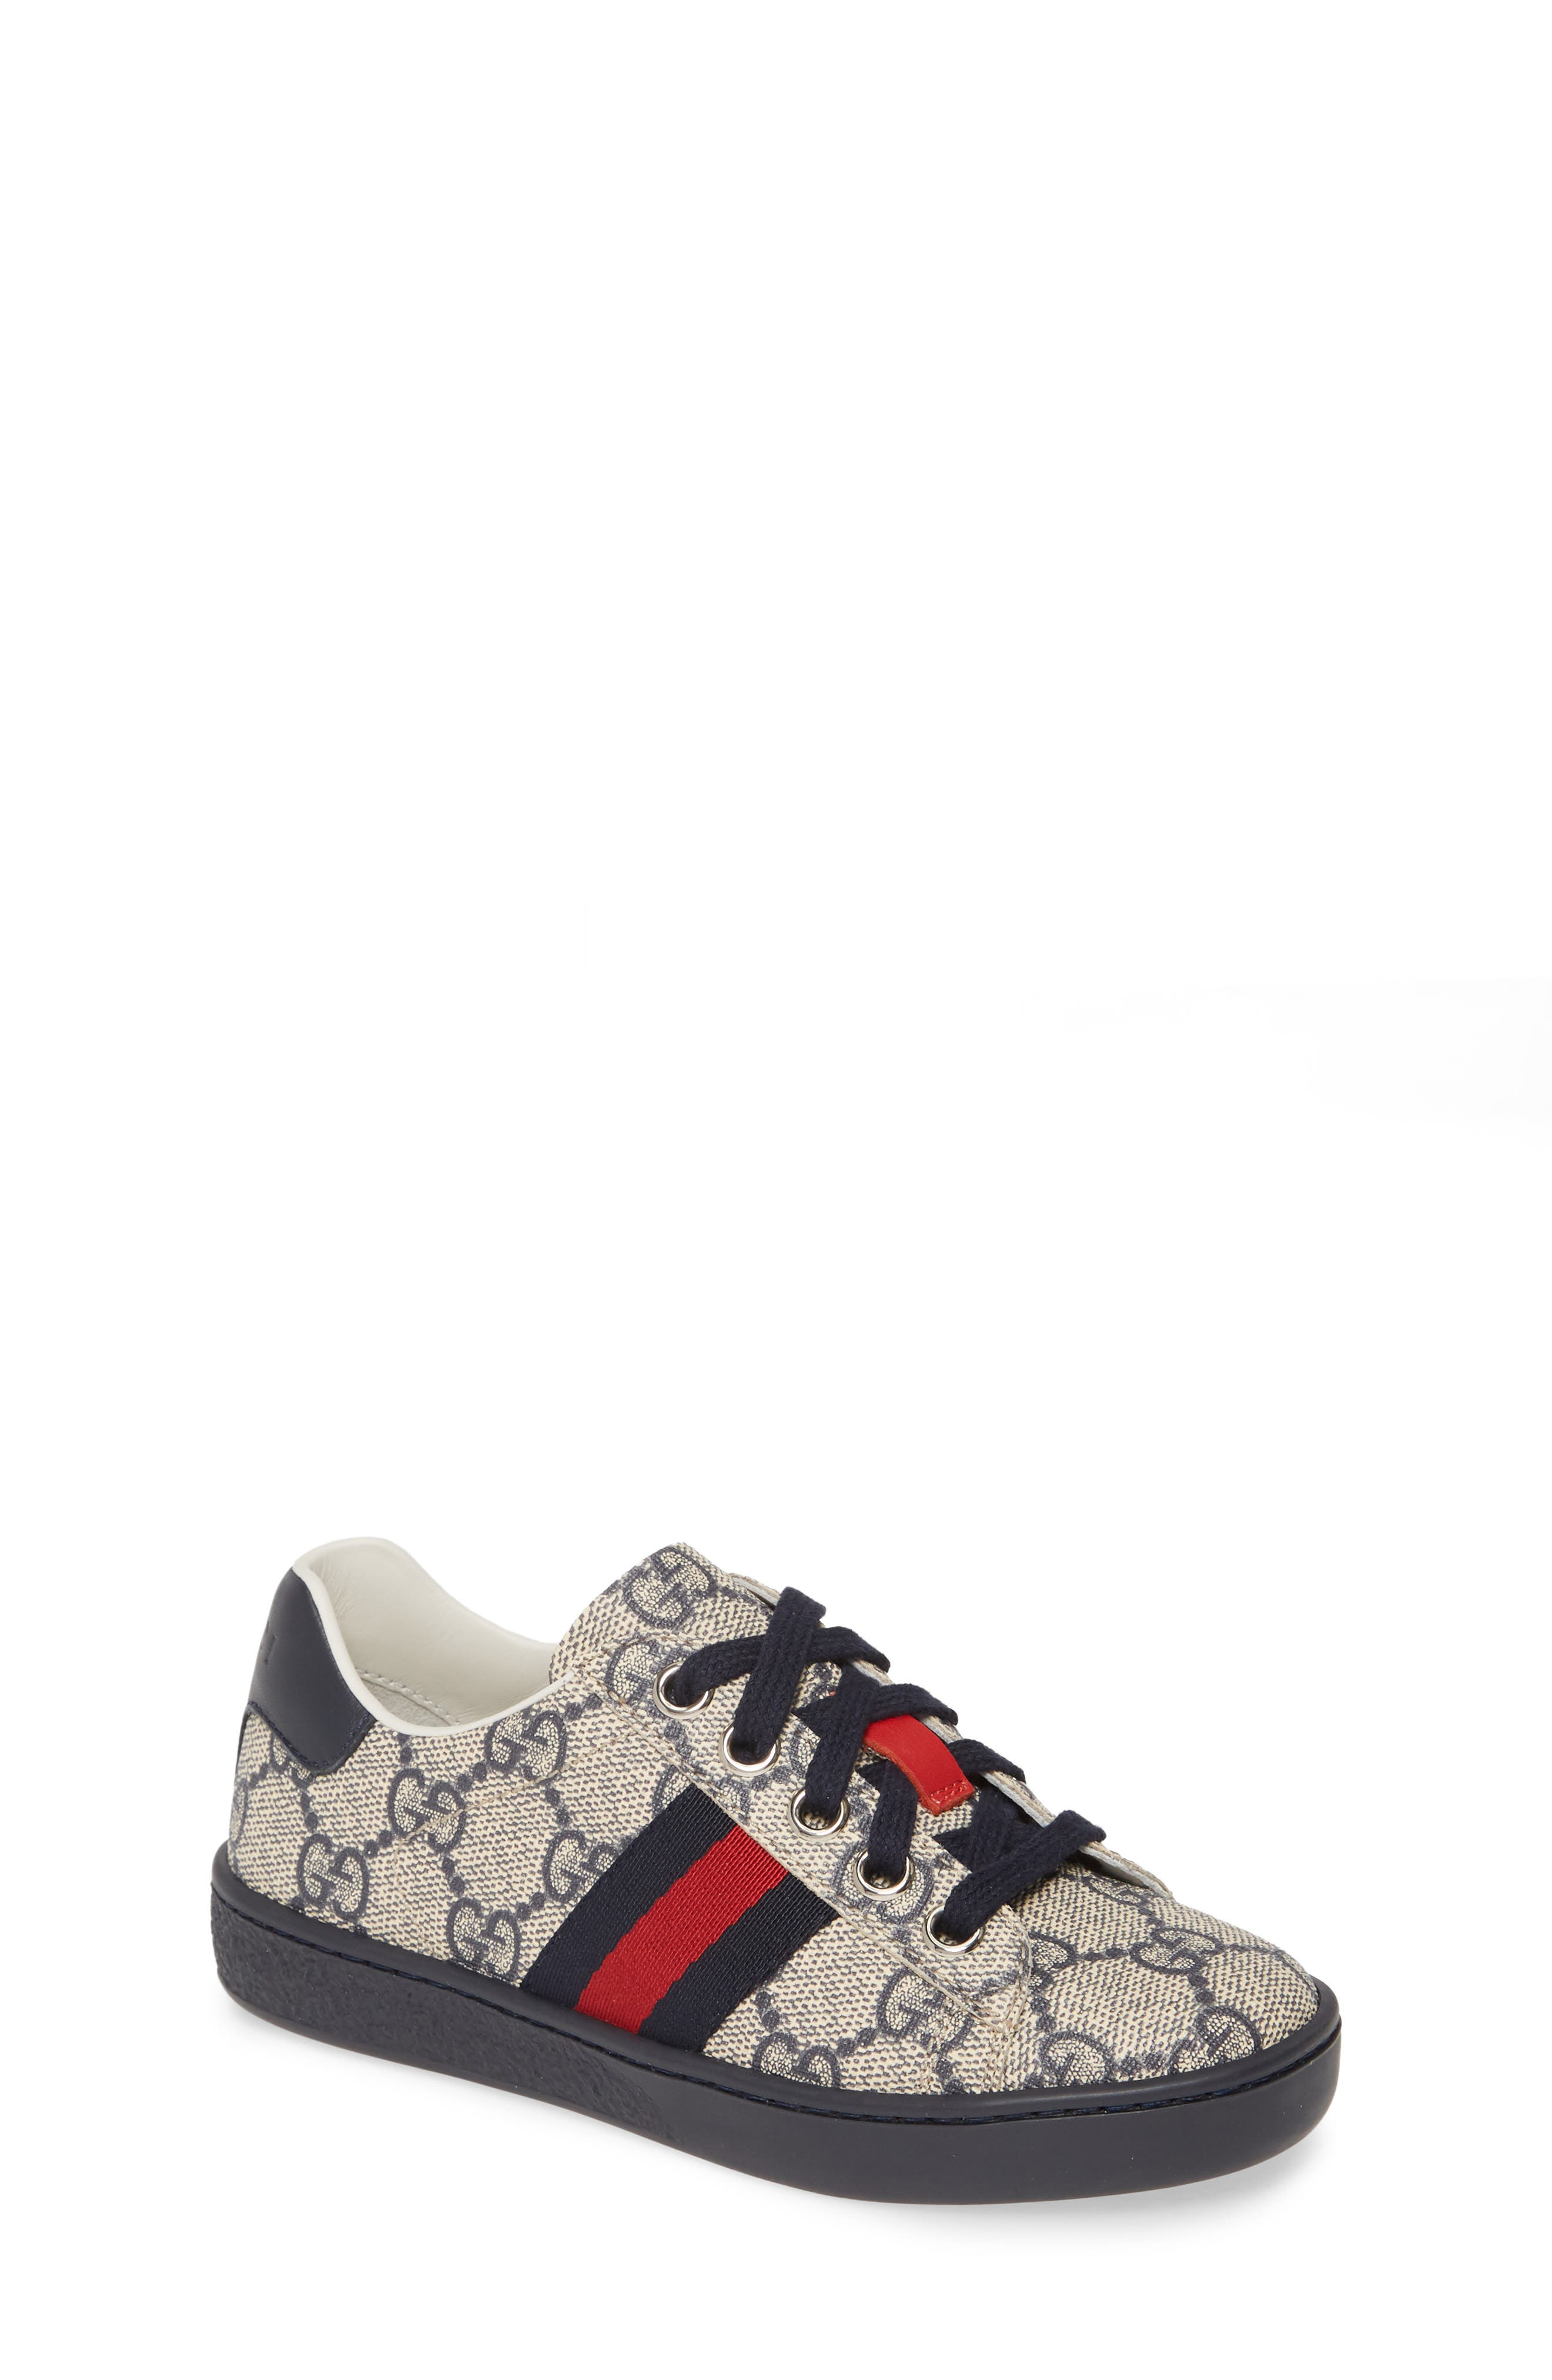 Toddler Gucci Shoes (Sizes 7.5,12)